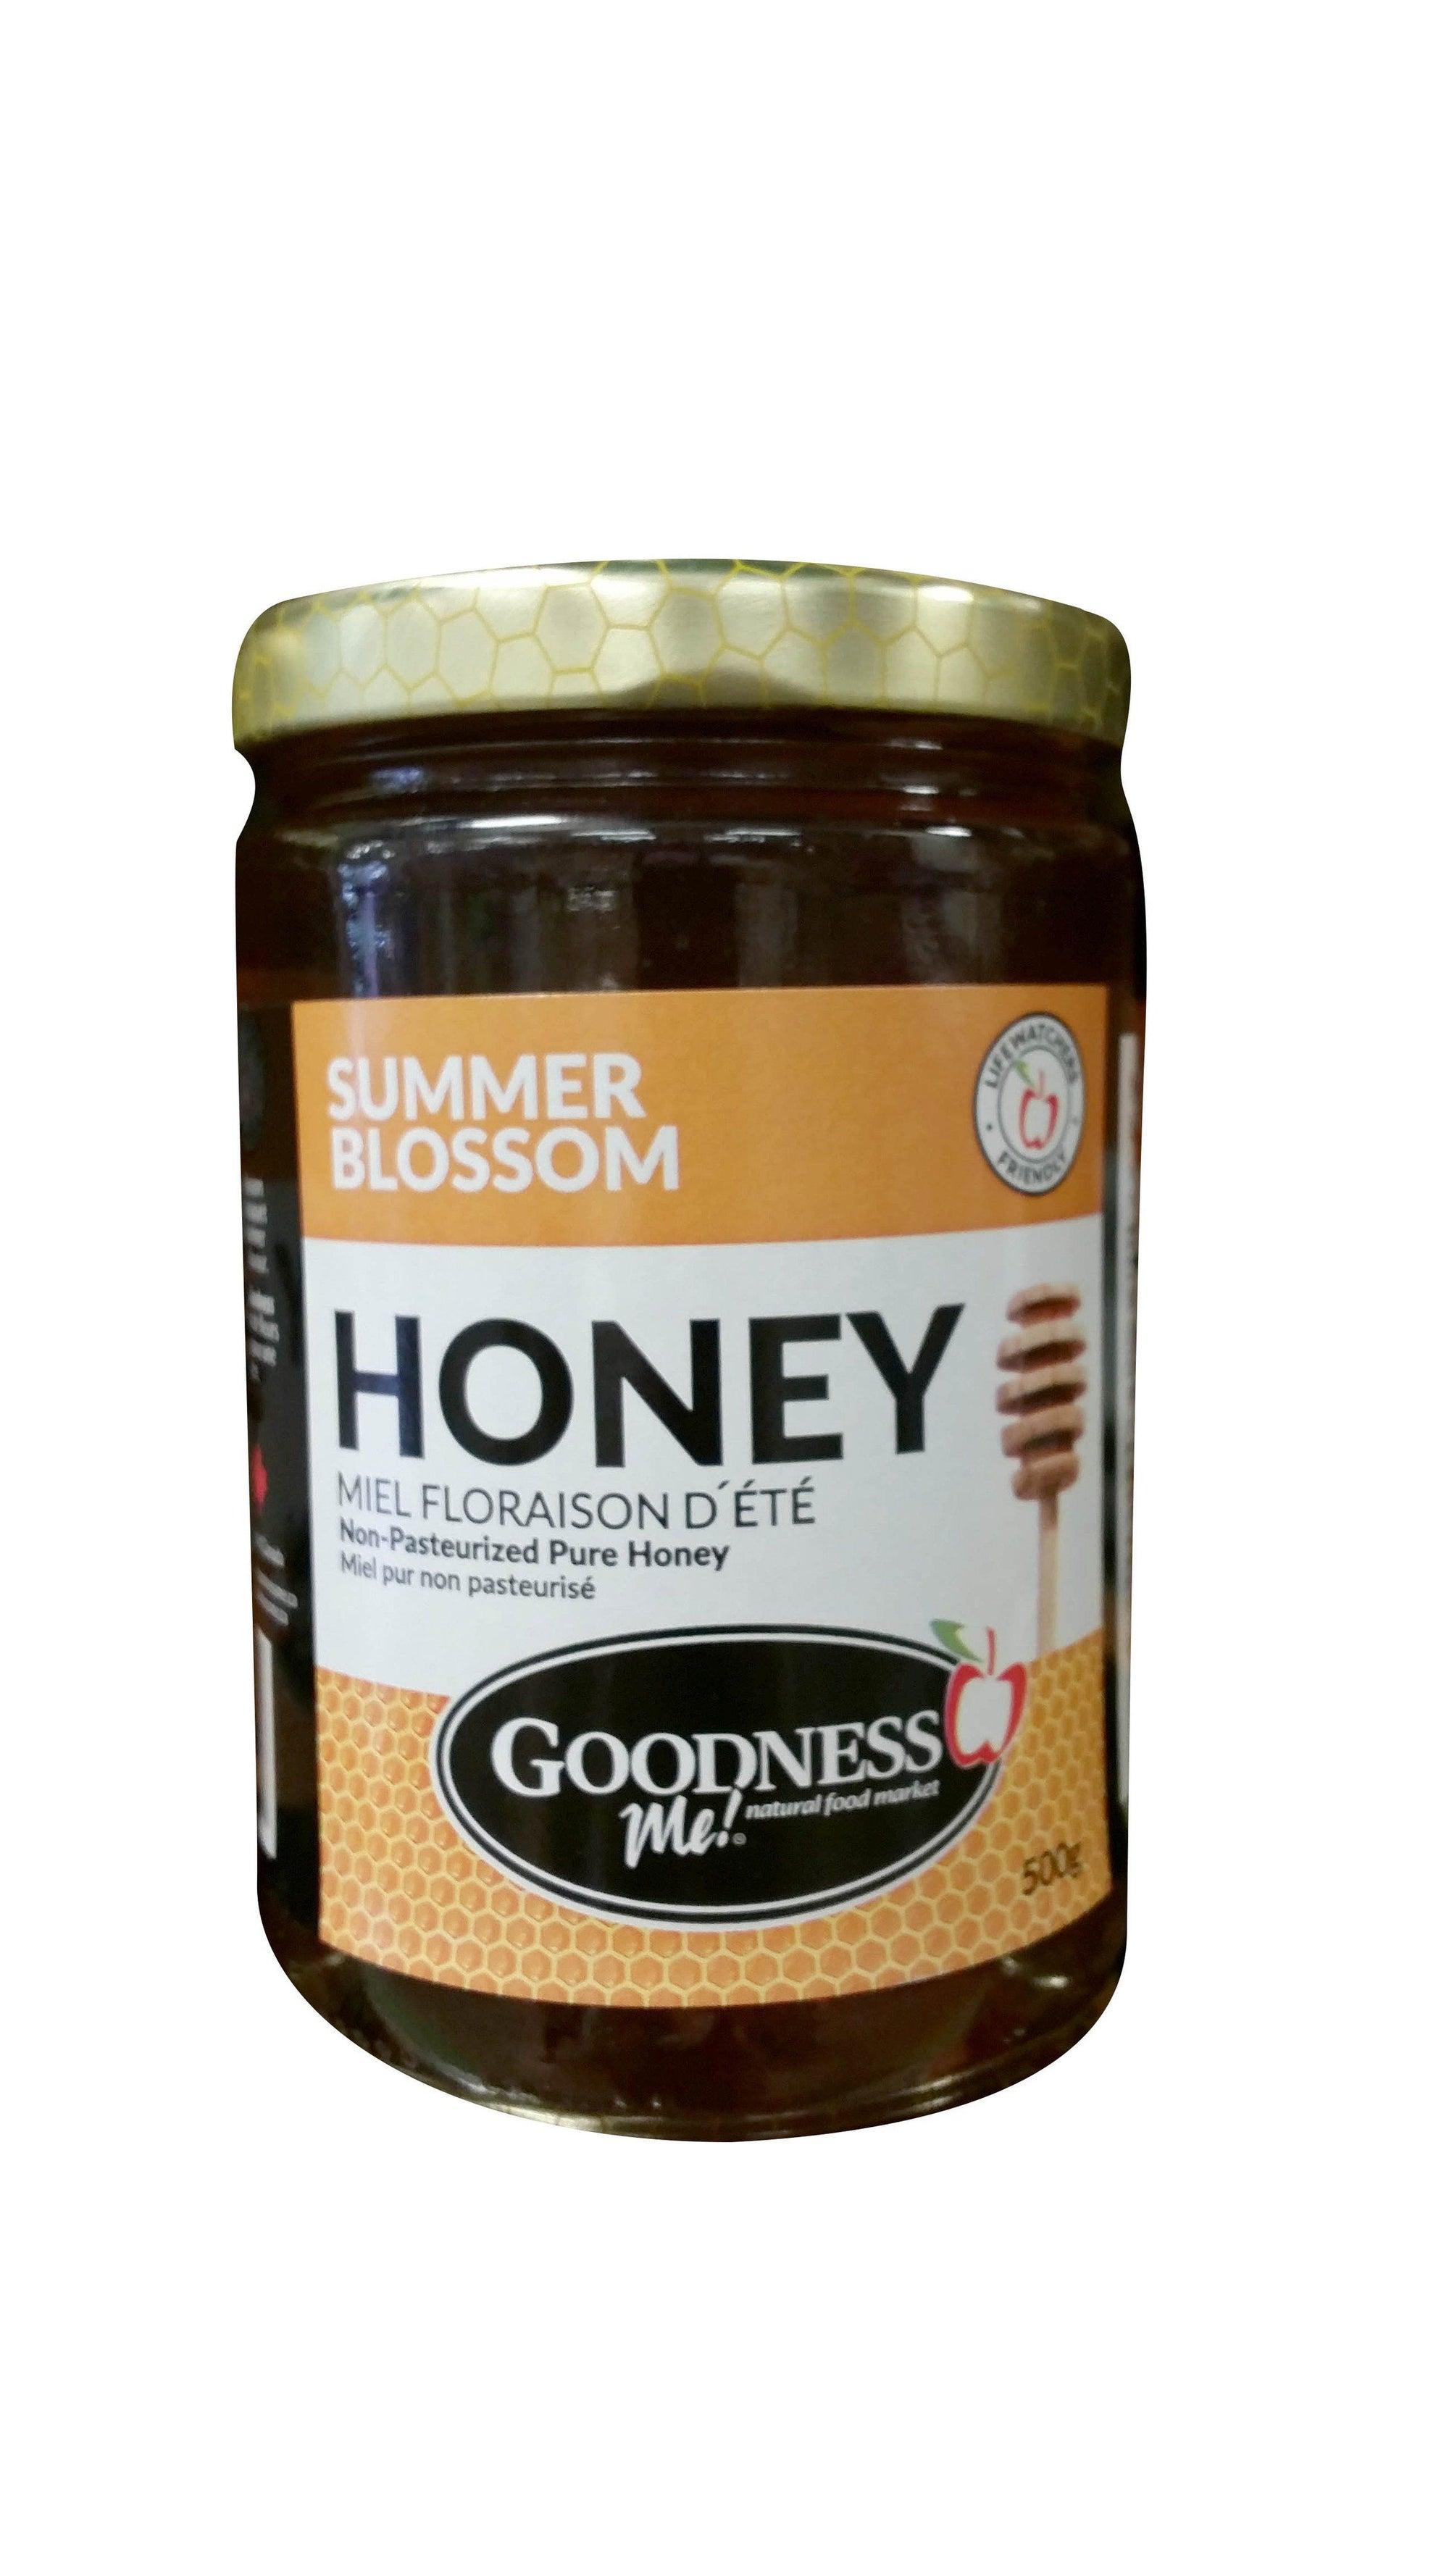 Food & Drink - Goodness Me! - Summer Blossom Honey - 500g